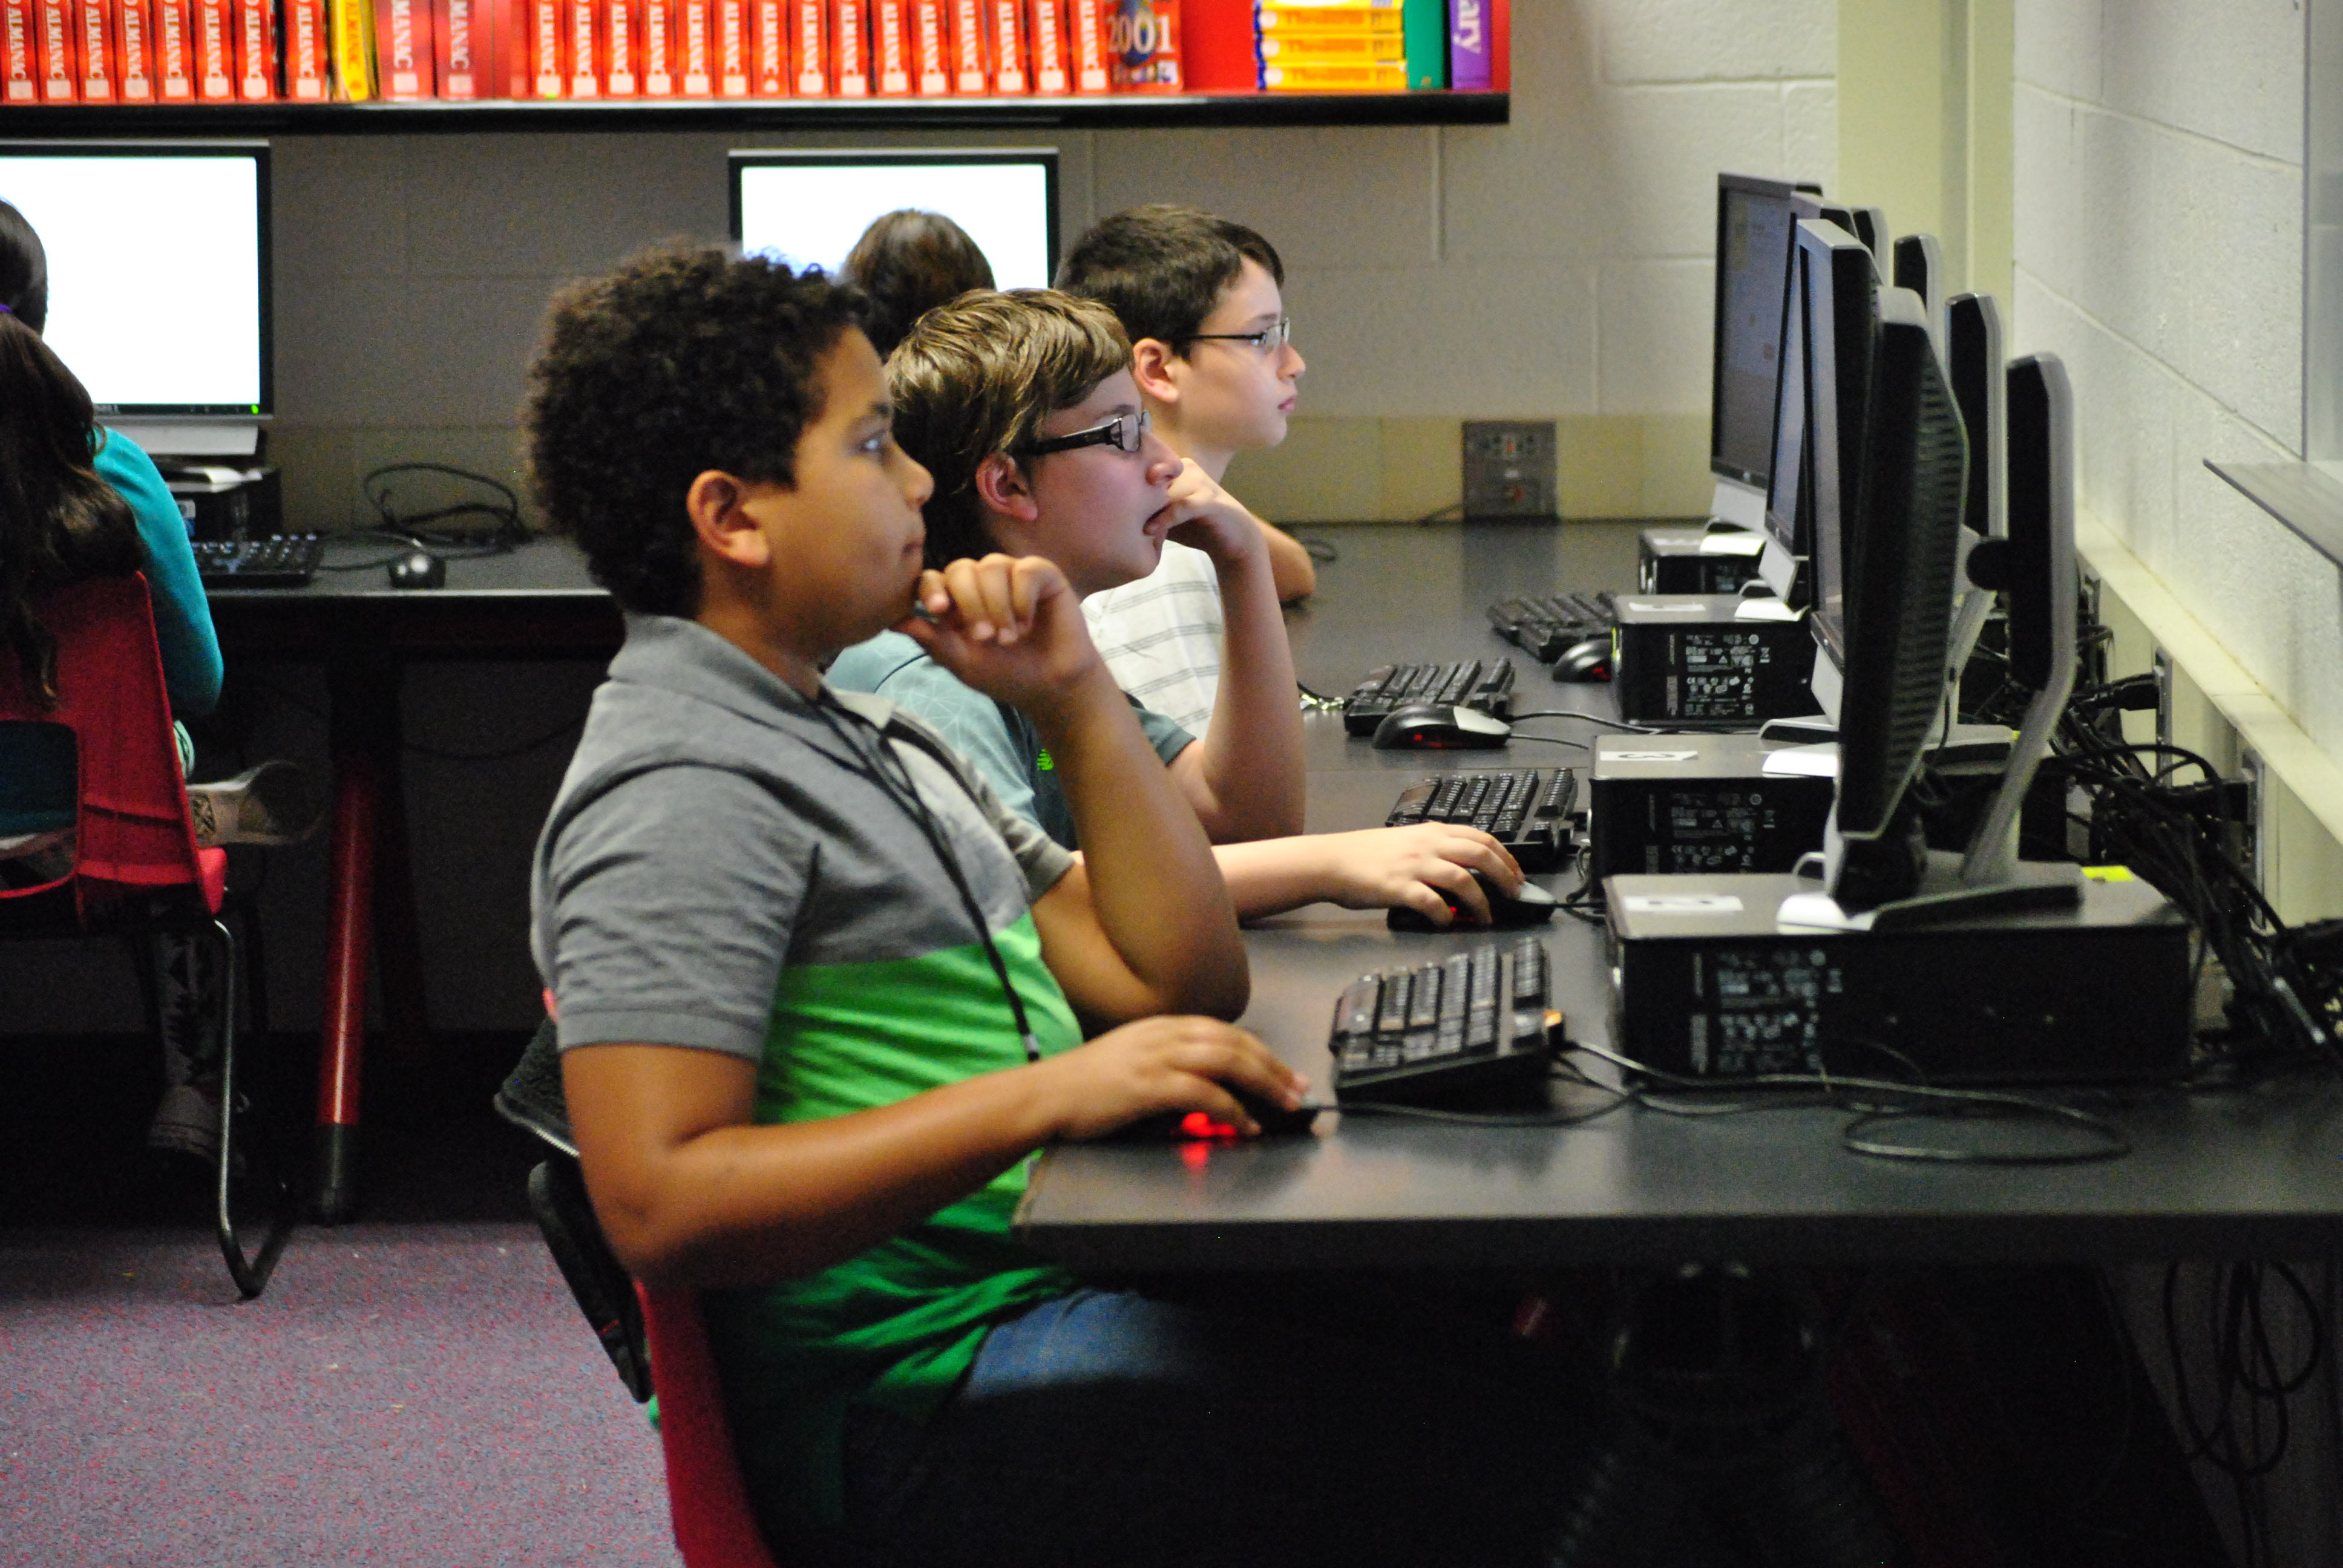 Berkshire Students in Computer Lab